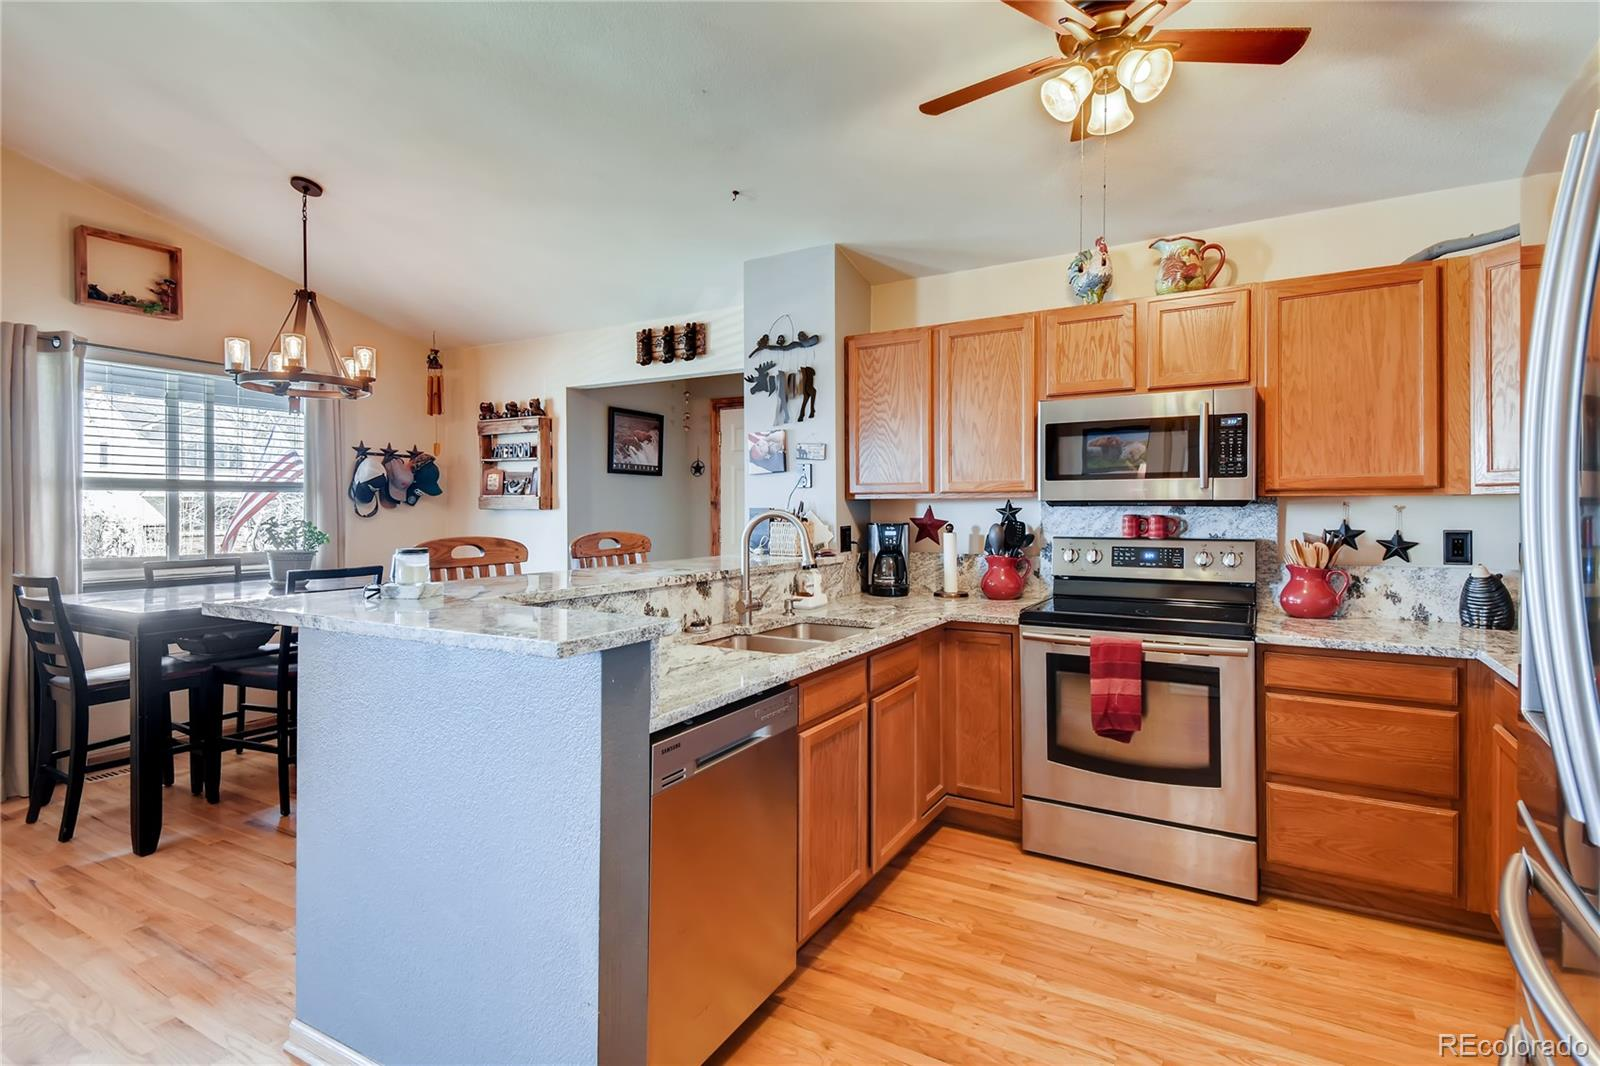 MLS# 3845561 - 9 - 524 Hawthorn Circle, Frederick, CO 80530